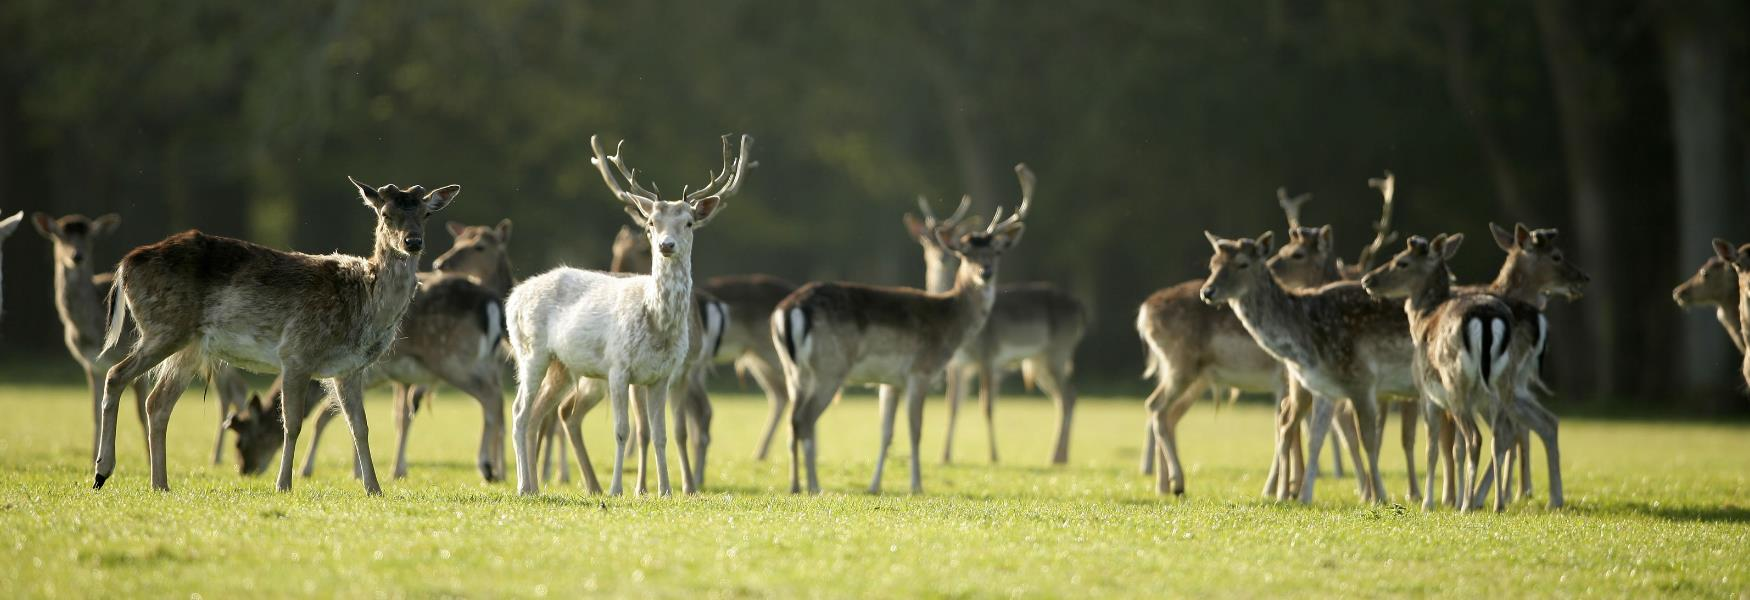 Deer on the grass in the New Forest